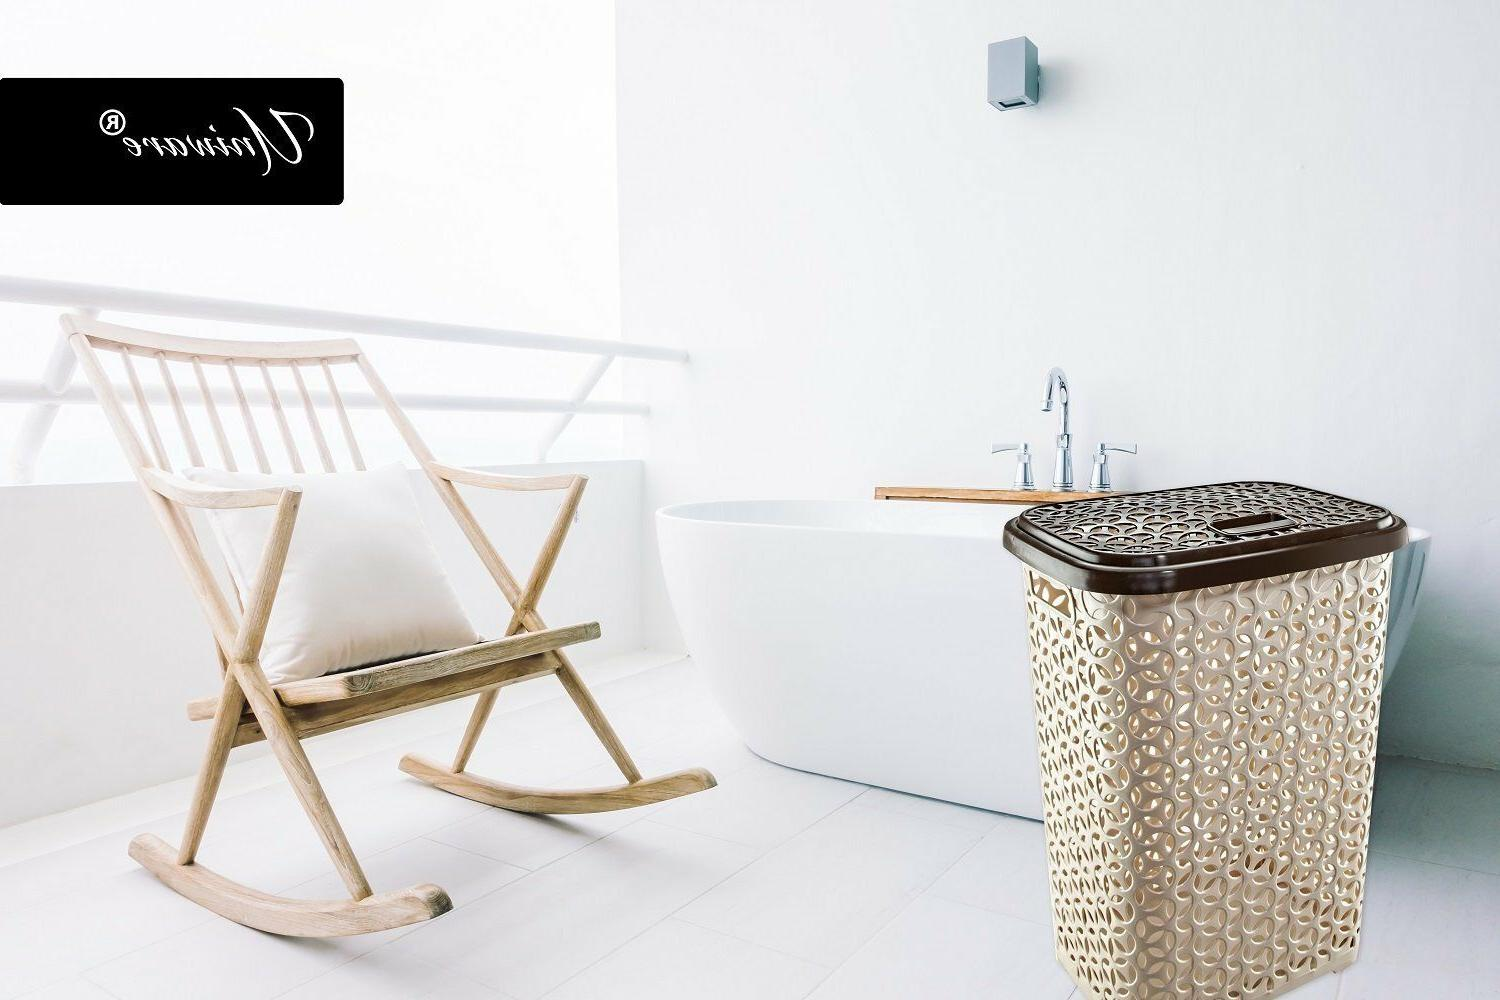 60 Liter Hollow Design Clothes Basket,Made In